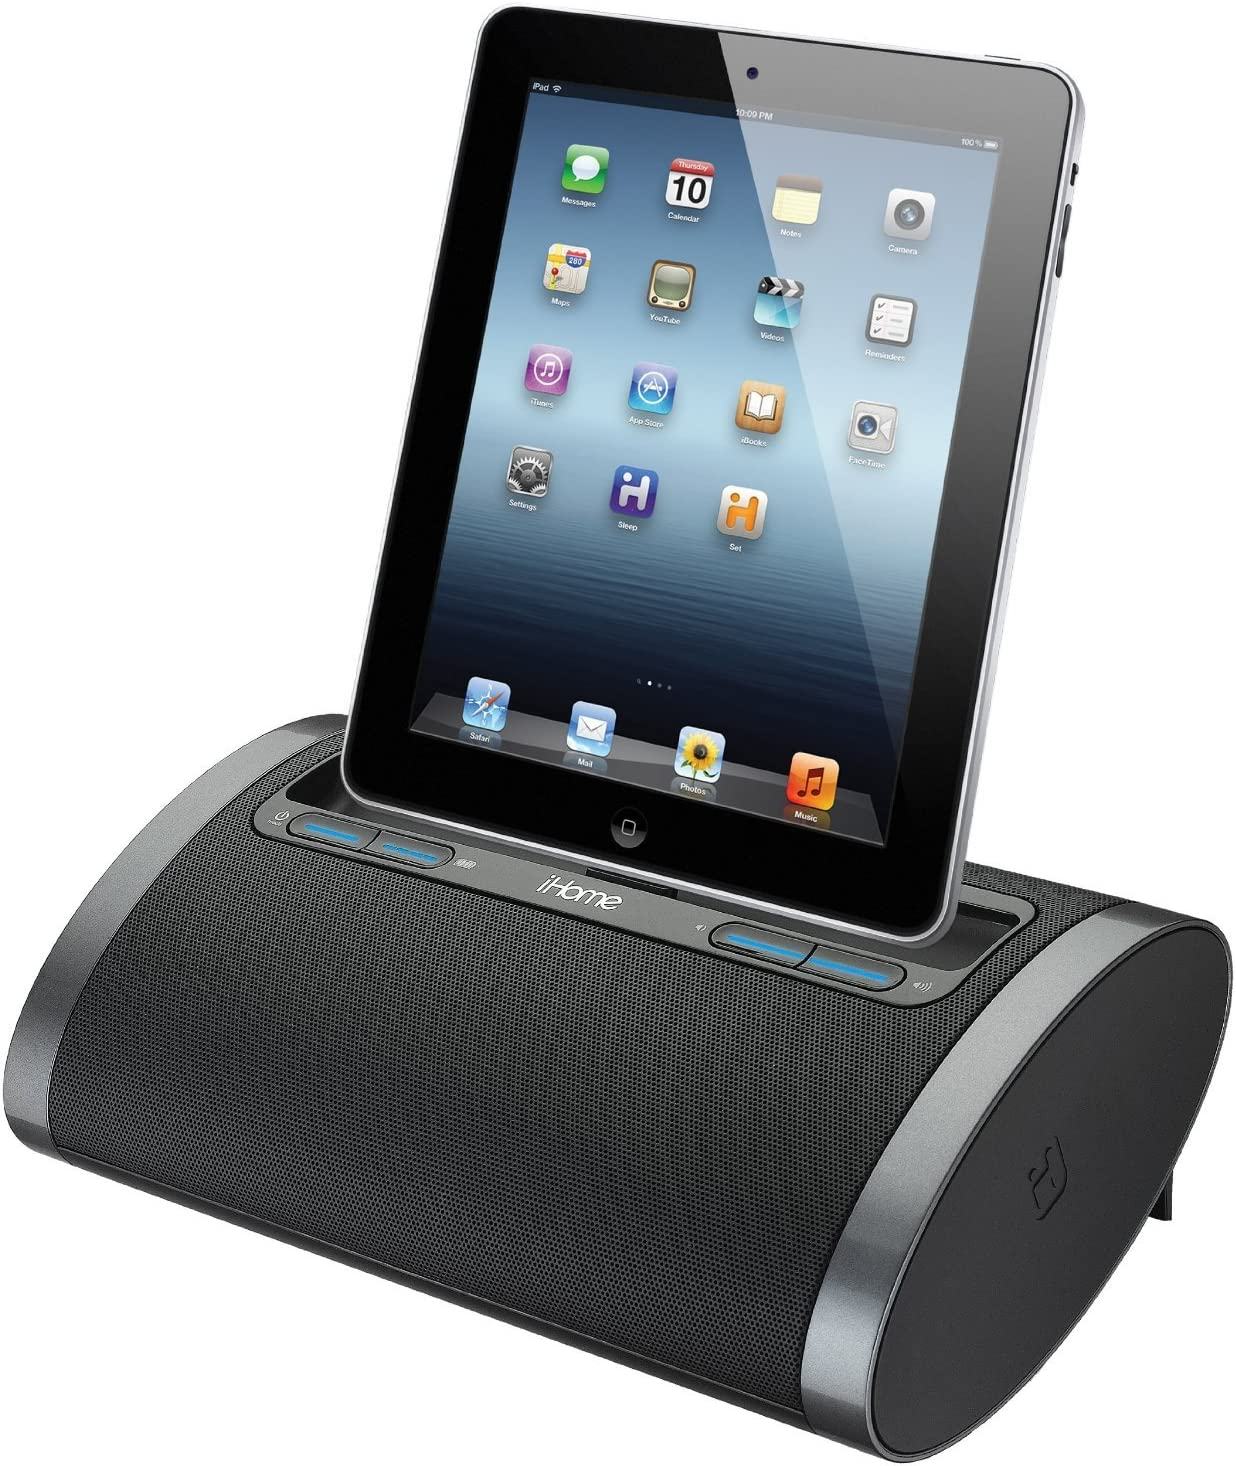 iHome Rechargeable Portable Speaker with Lightning Dock for iPhone 5/5s, iPod, iPad Reason8 Speaker & SRS TruBass Sound Circuitry, USB Port to Play and Charge Your iPhone 5/5S iPad, iPod with Built-In Rechargeable Battery